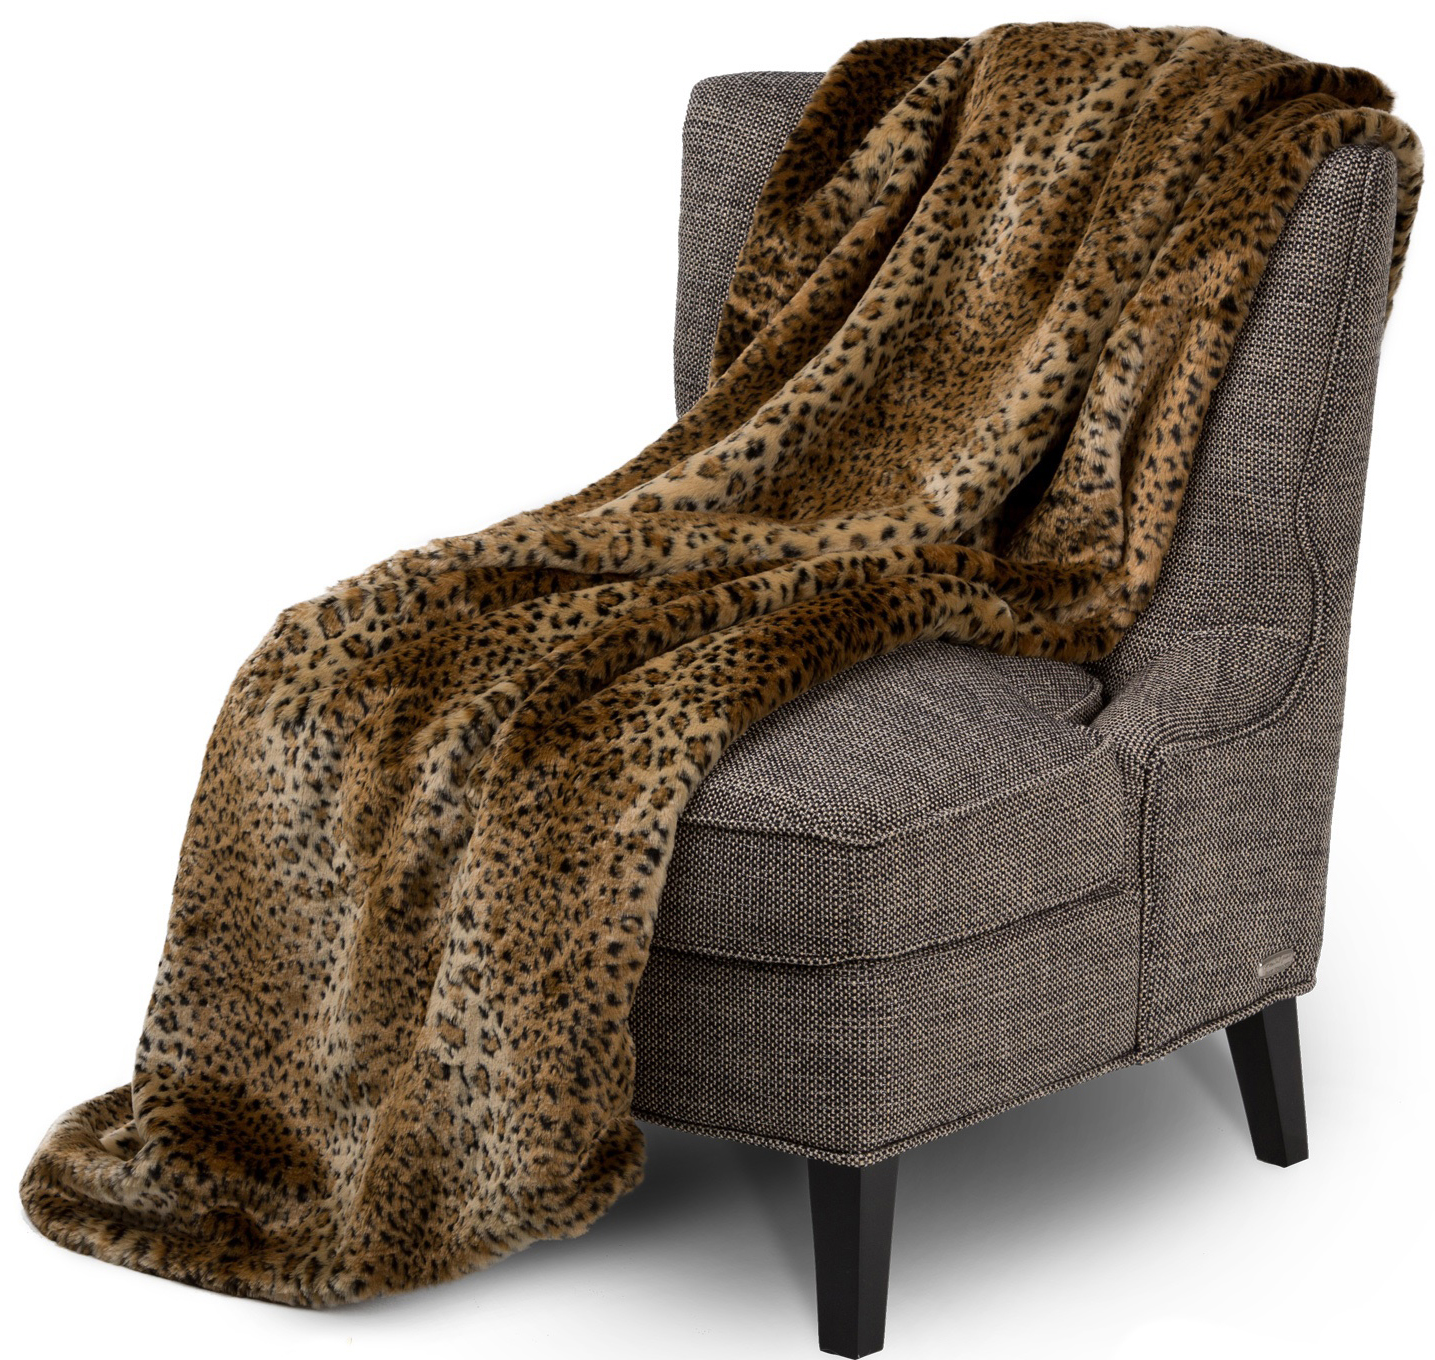 Branson Throw Blanket by Michael Amini